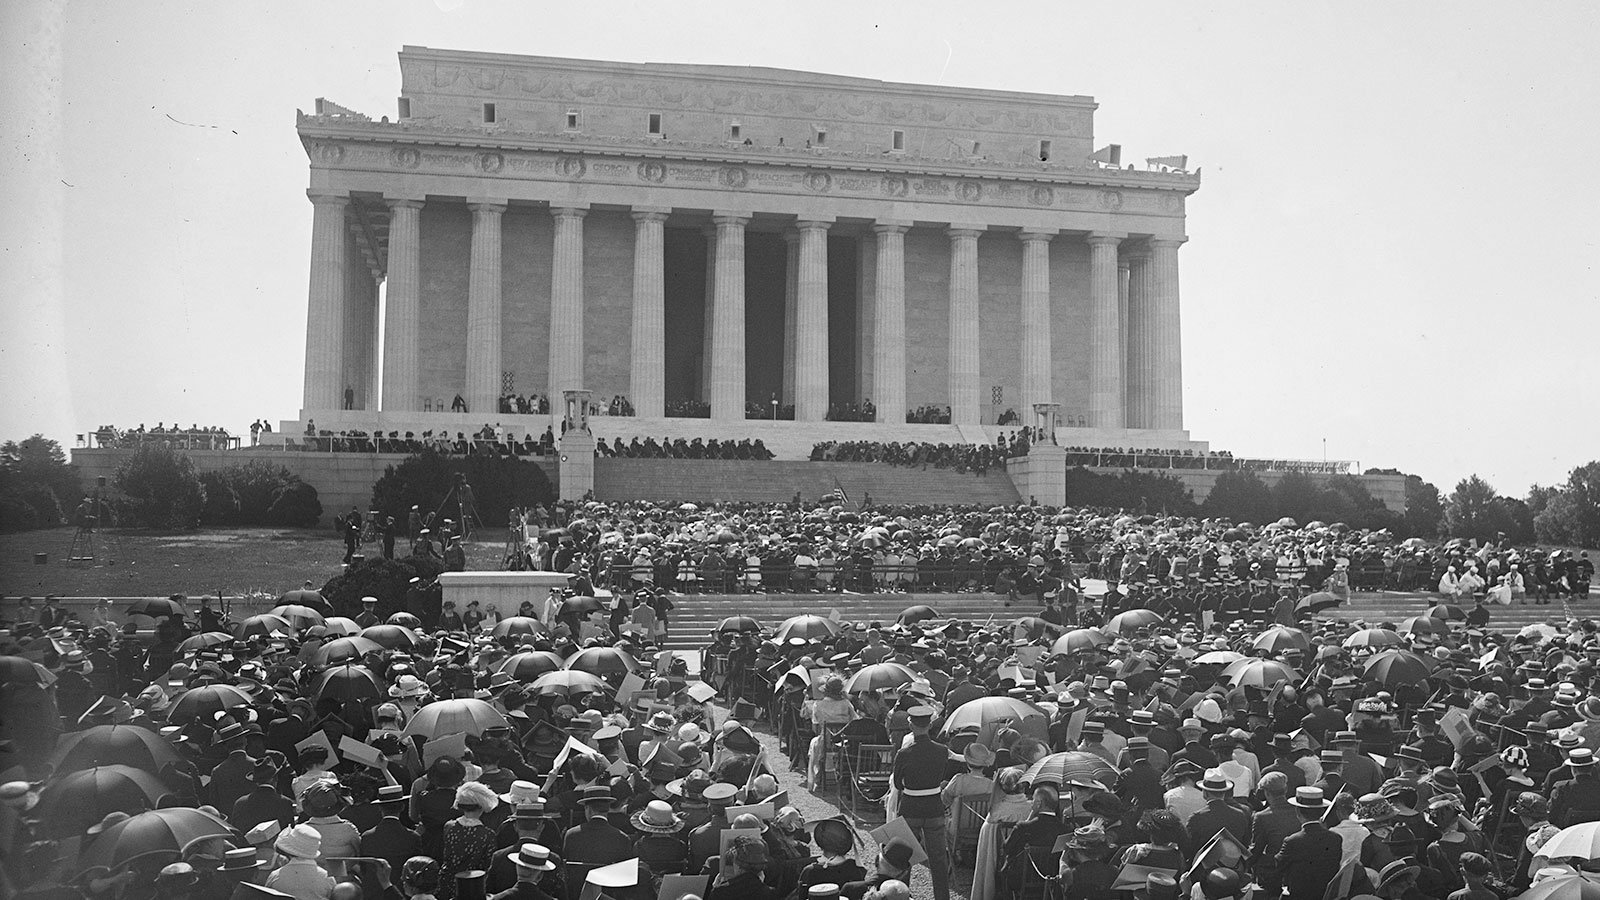 Dedication of the Lincoln Memorial on May 30, 1922